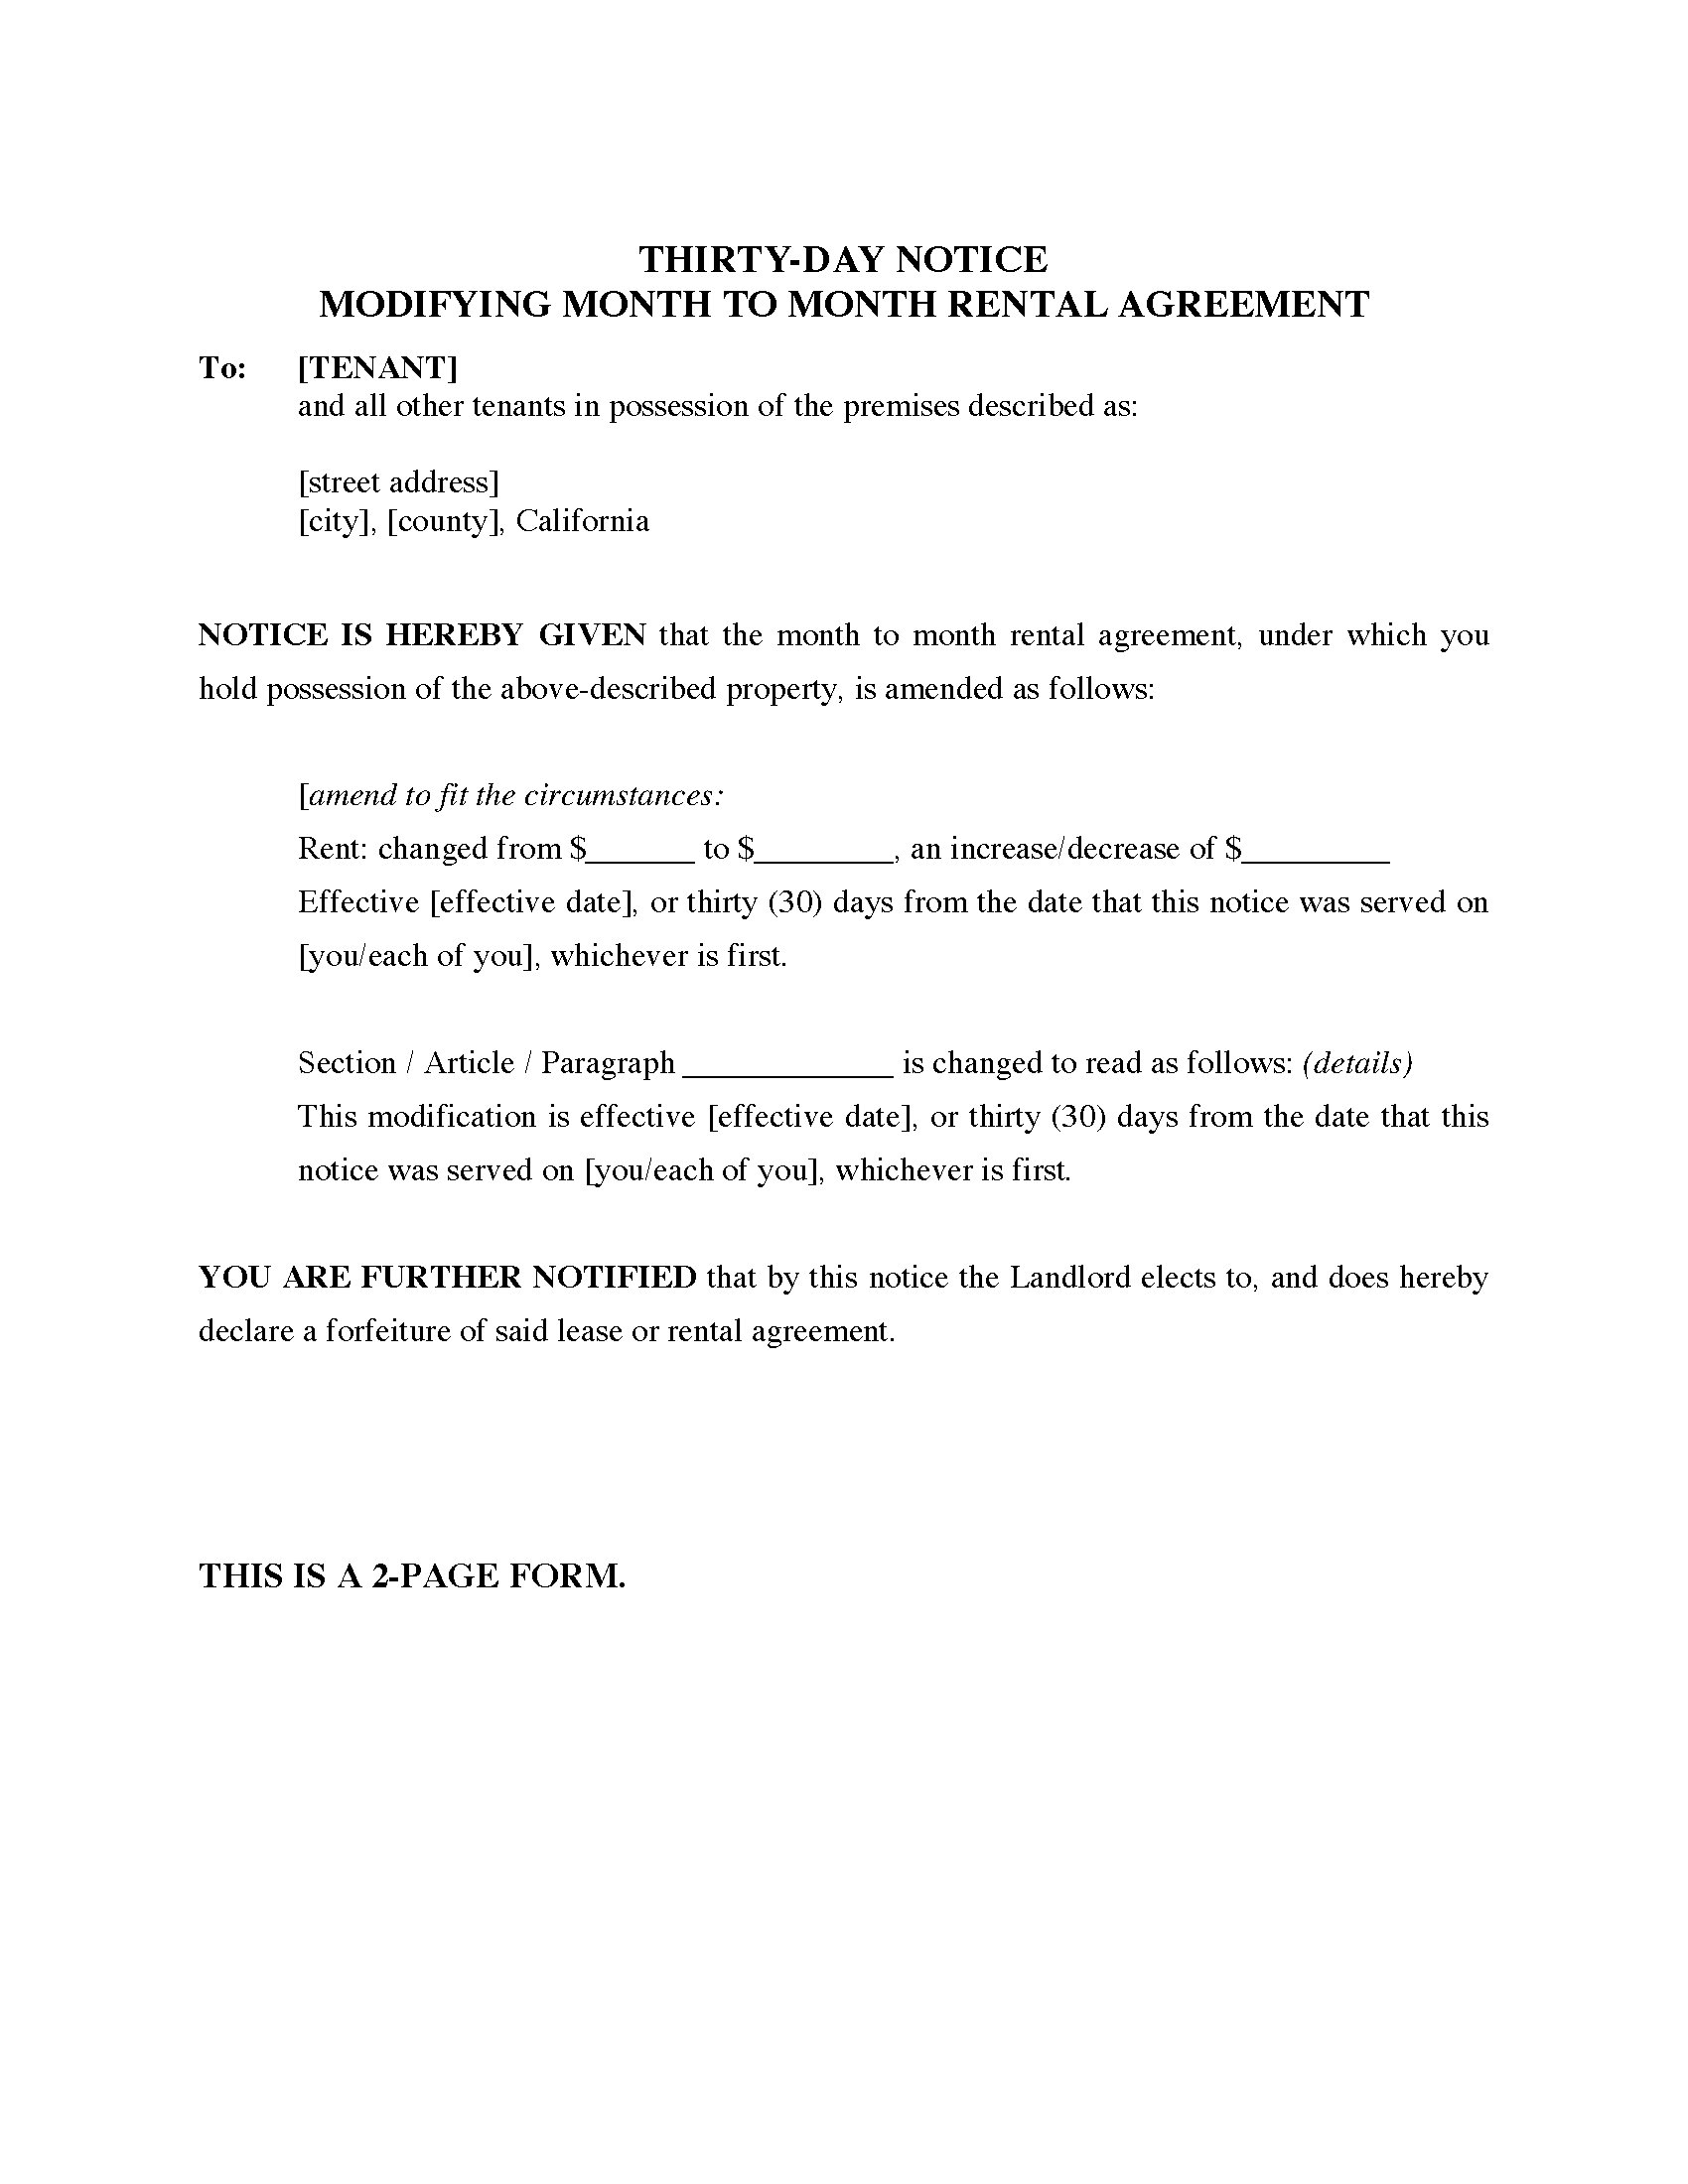 California 30-Day Notice Modifying Month-to-Month Rental Agreement ...